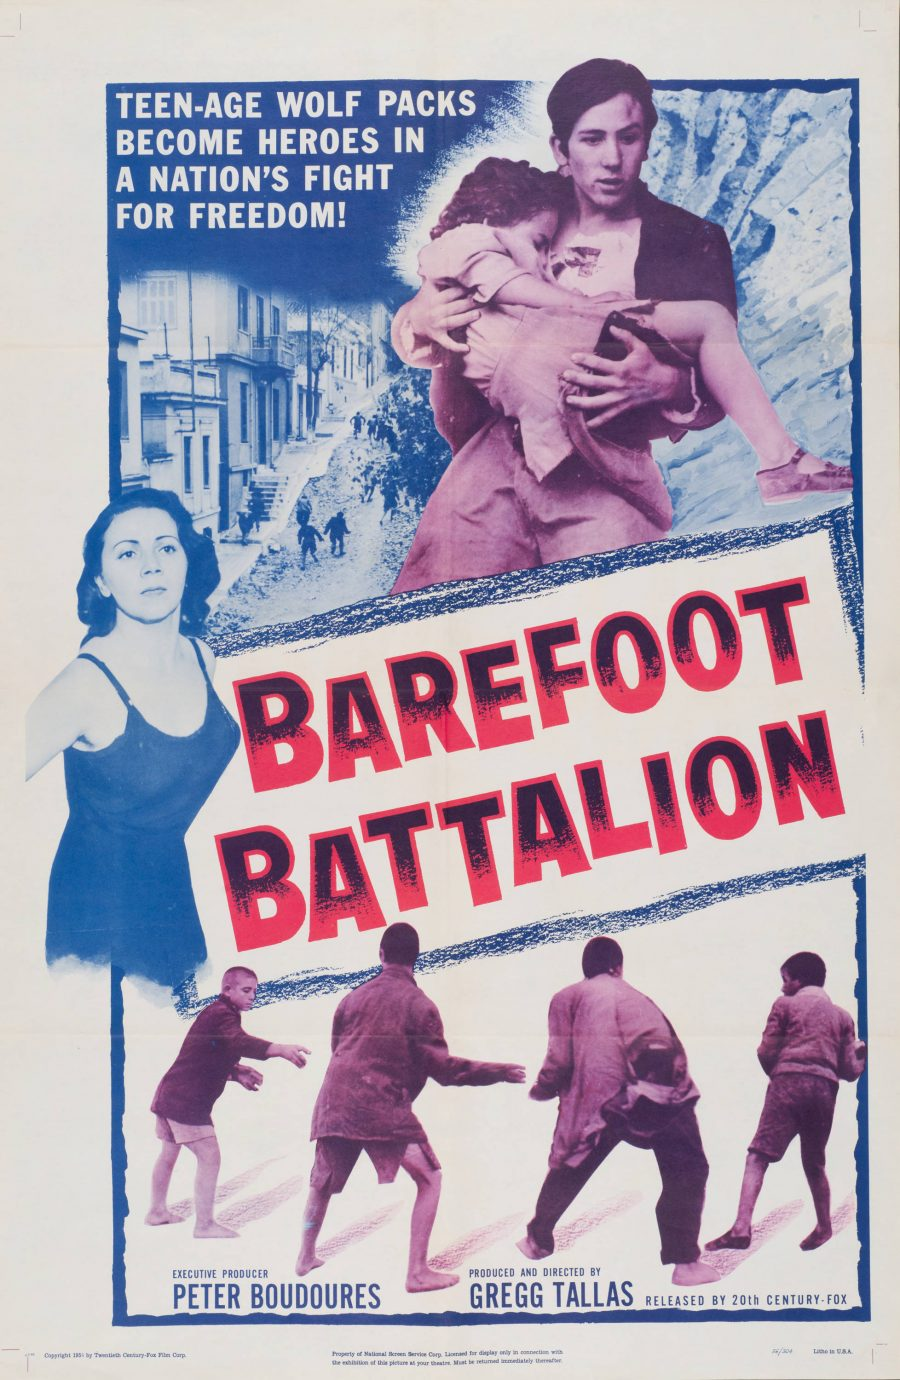 10,000 Classic Movie Posters Getting Digitized & Put Online by the Harry Ransom Center at UT-Austin: Free to Browse & Download Artes & contextos Barefoot Battalion e1516348026668